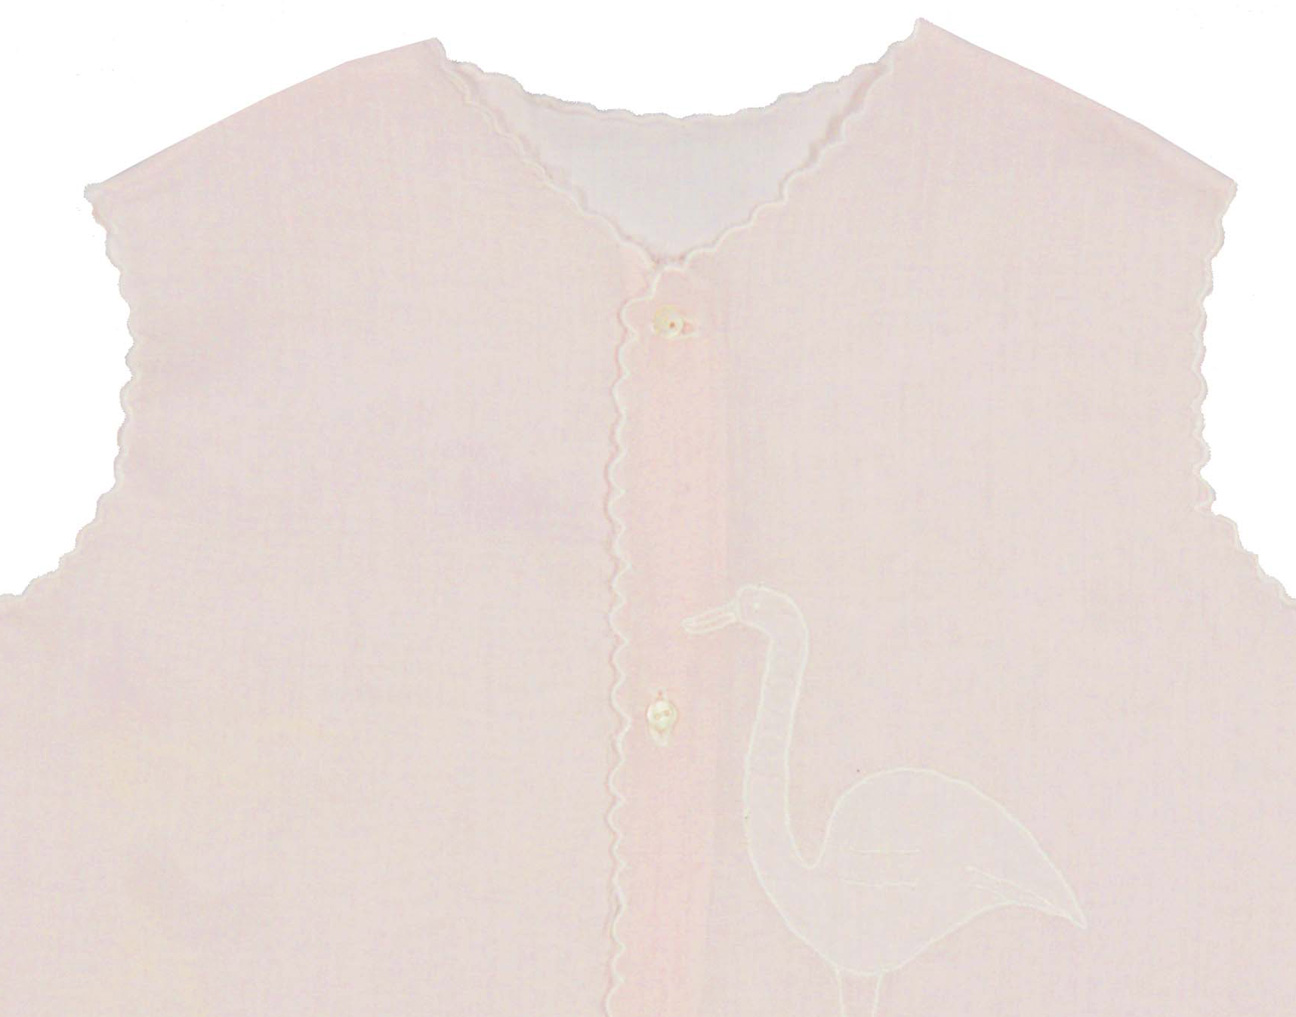 Vintage s pale pink cotton lawn diaper shirt with white